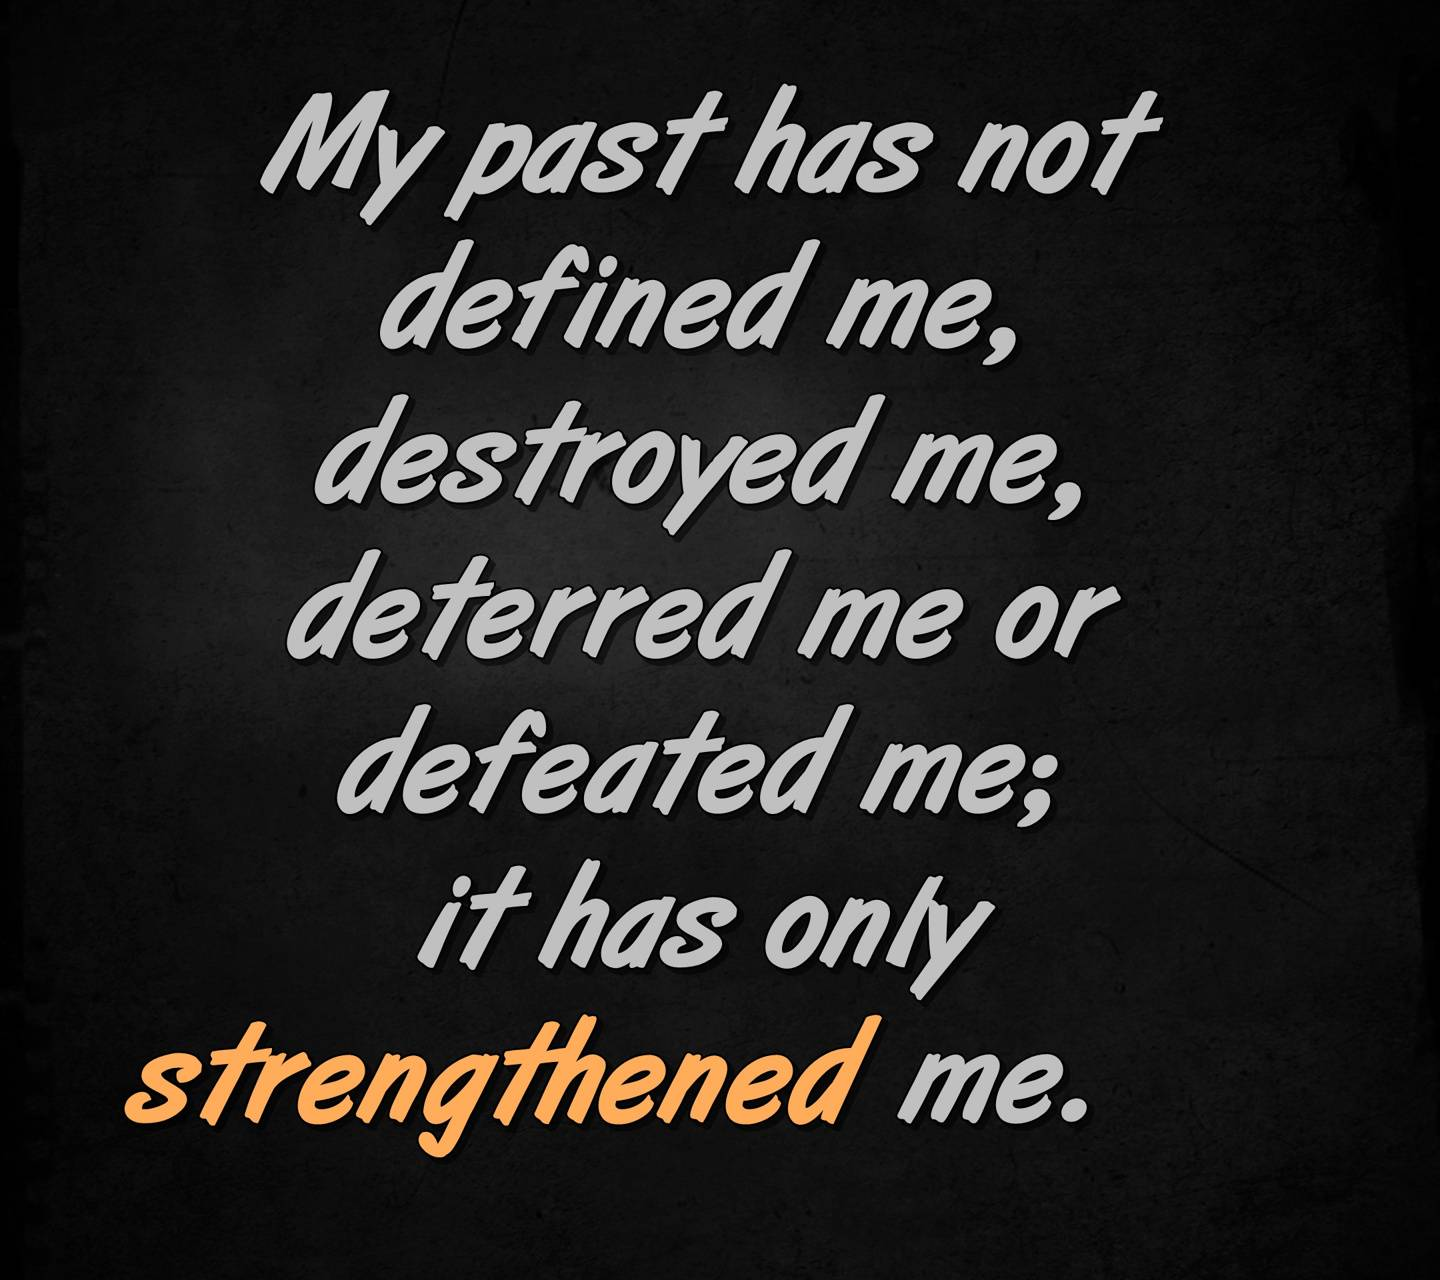 strengthened